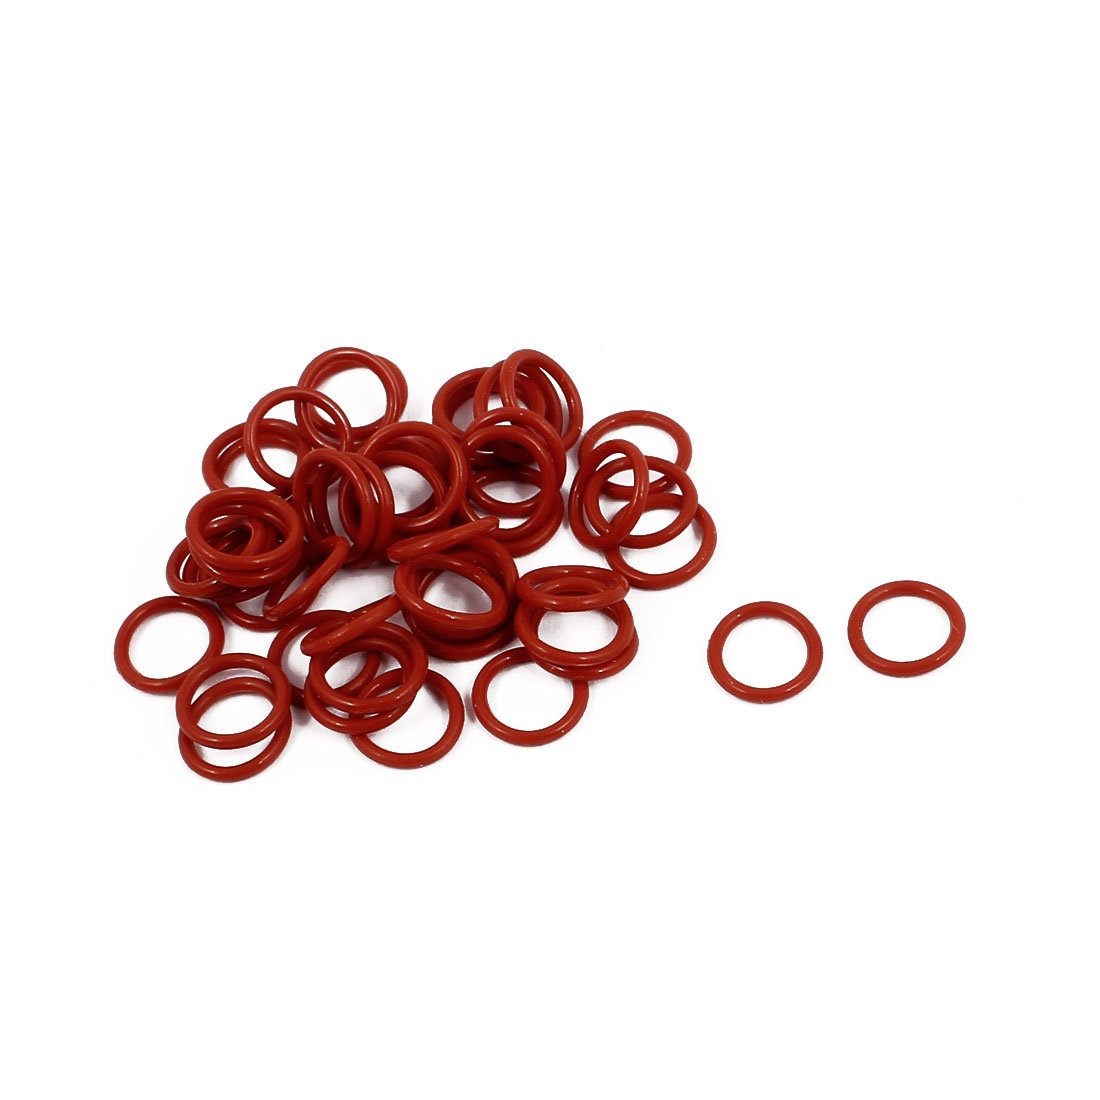 50Pcs 9mm x 1mm Rubber O-rings NBR Heat Resistant Sealing Ring Grommets Red